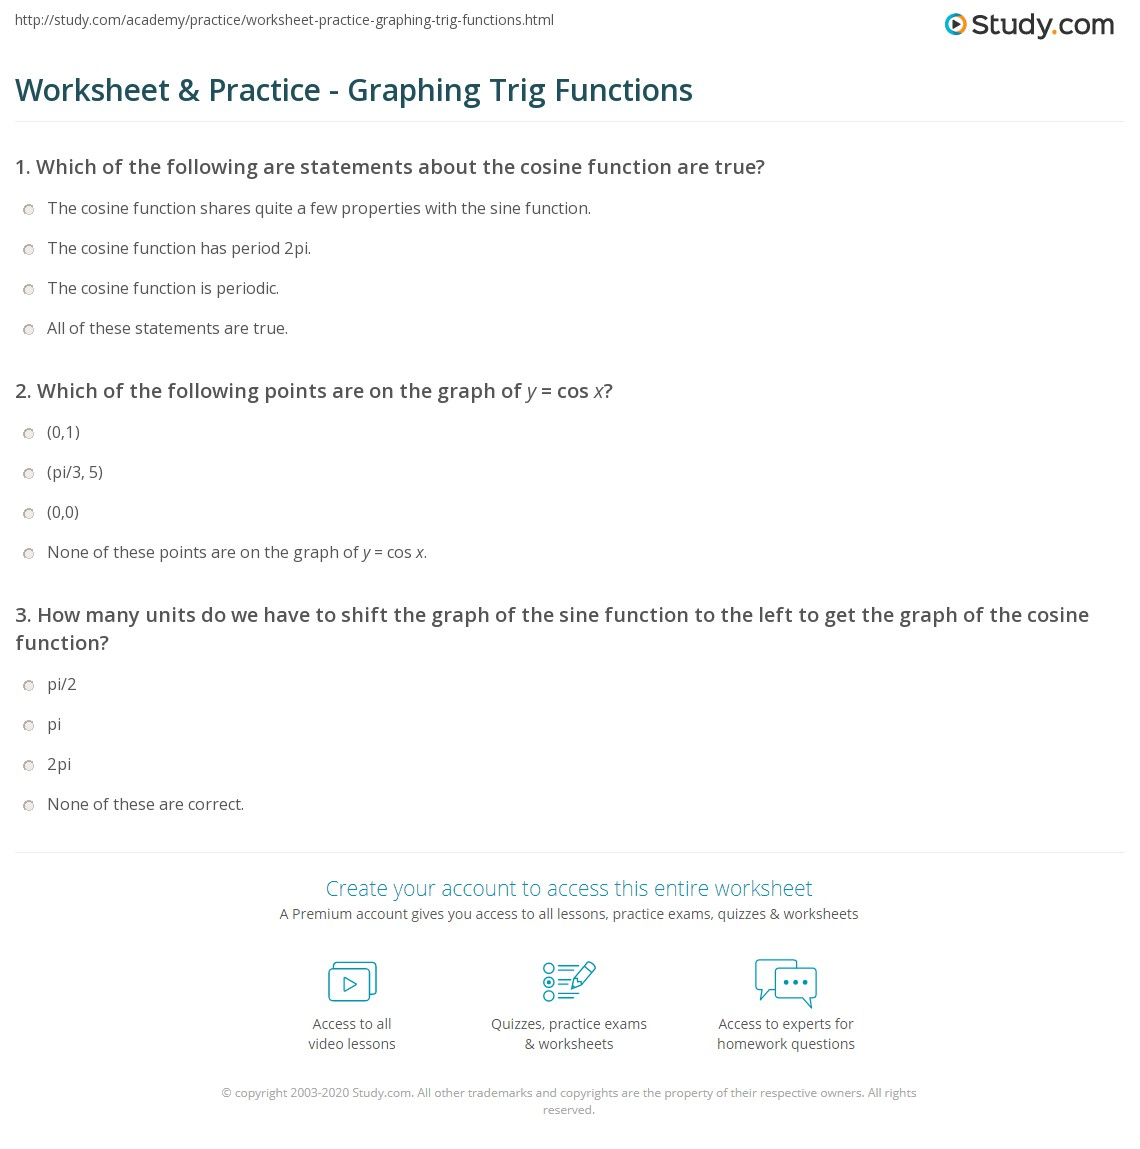 worksheet 5.3 Solving Trig Equations Practice Worksheet 1 Answers worksheet practice graphing trig functions study com print how to graph cosx worksheet